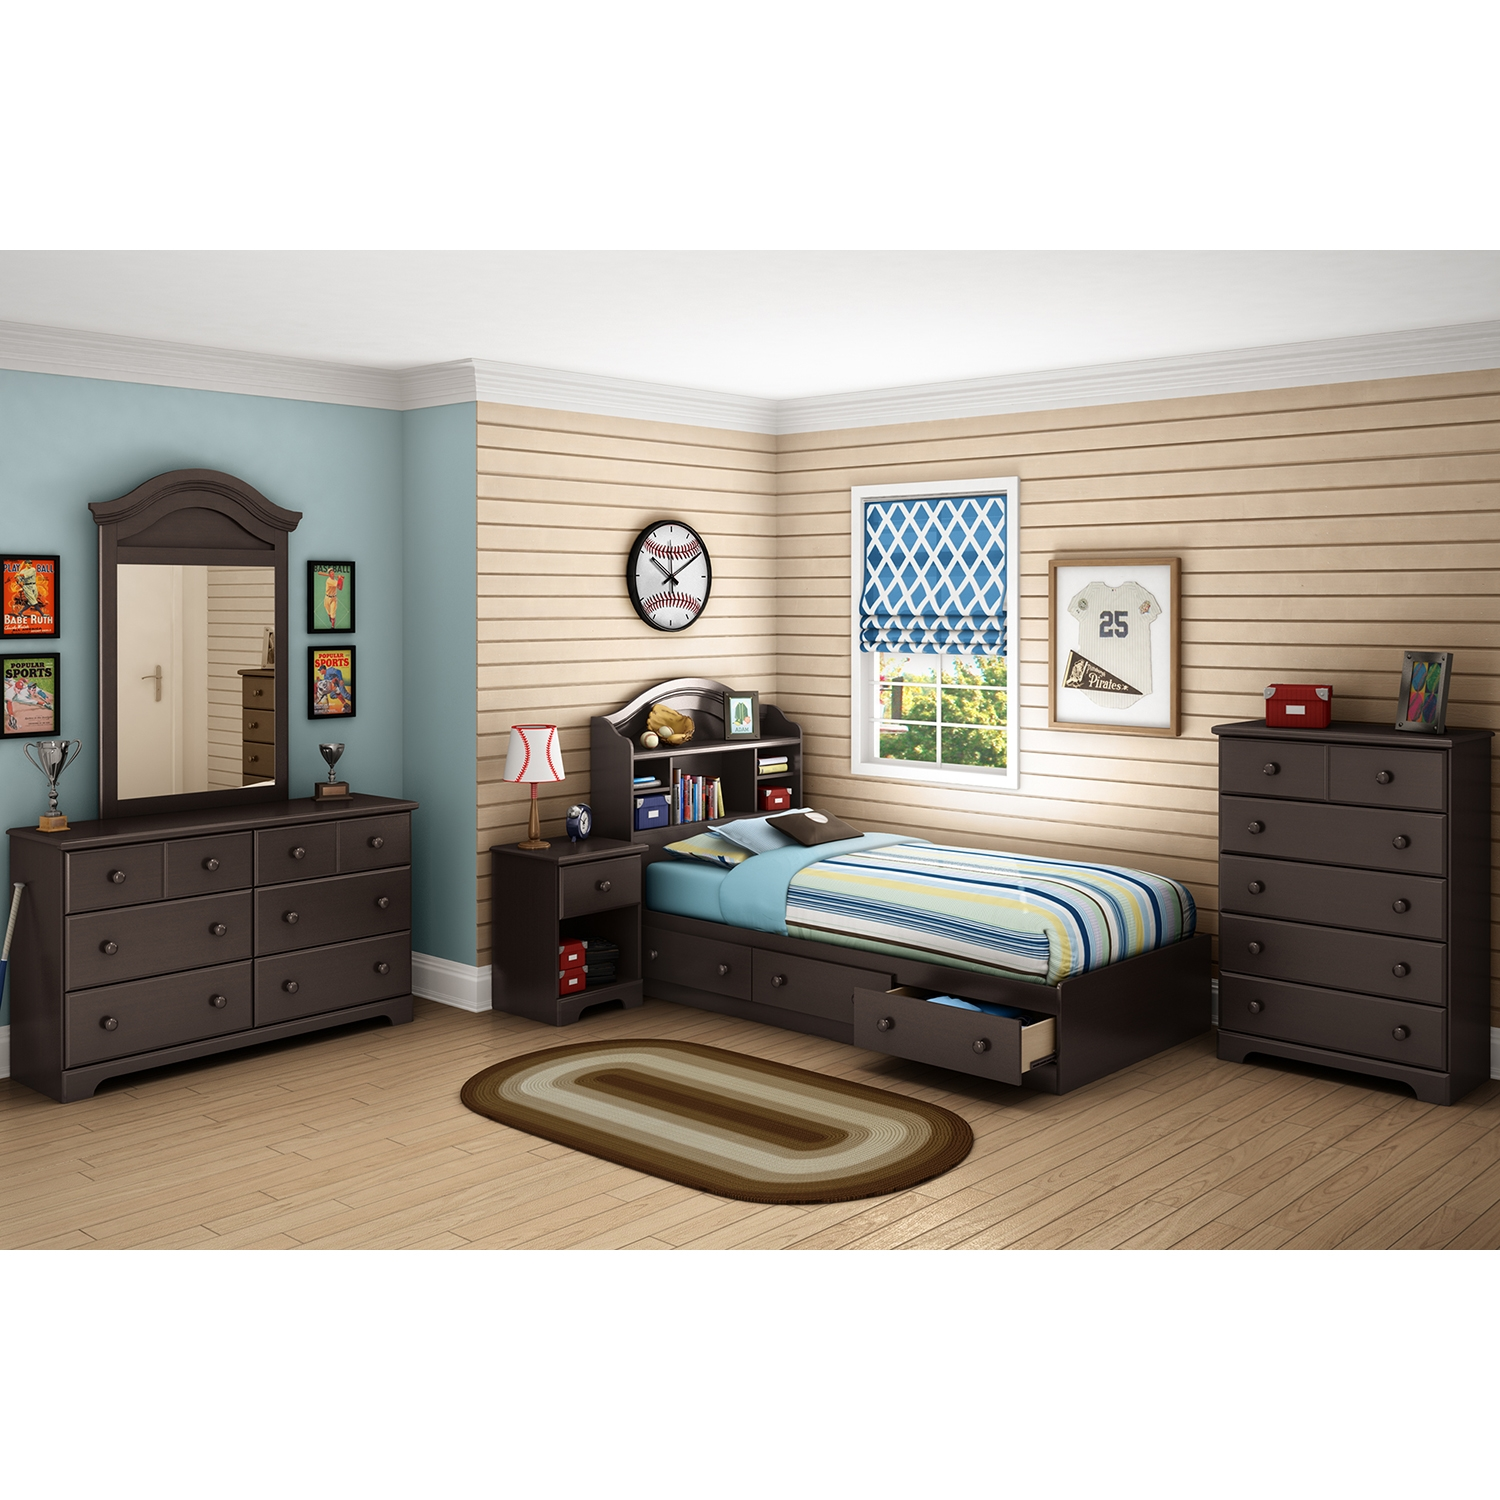 Summer Breeze Twin Mates Bed - 3 Drawers, Bookcase Headboard, Chocolate - SS-10048